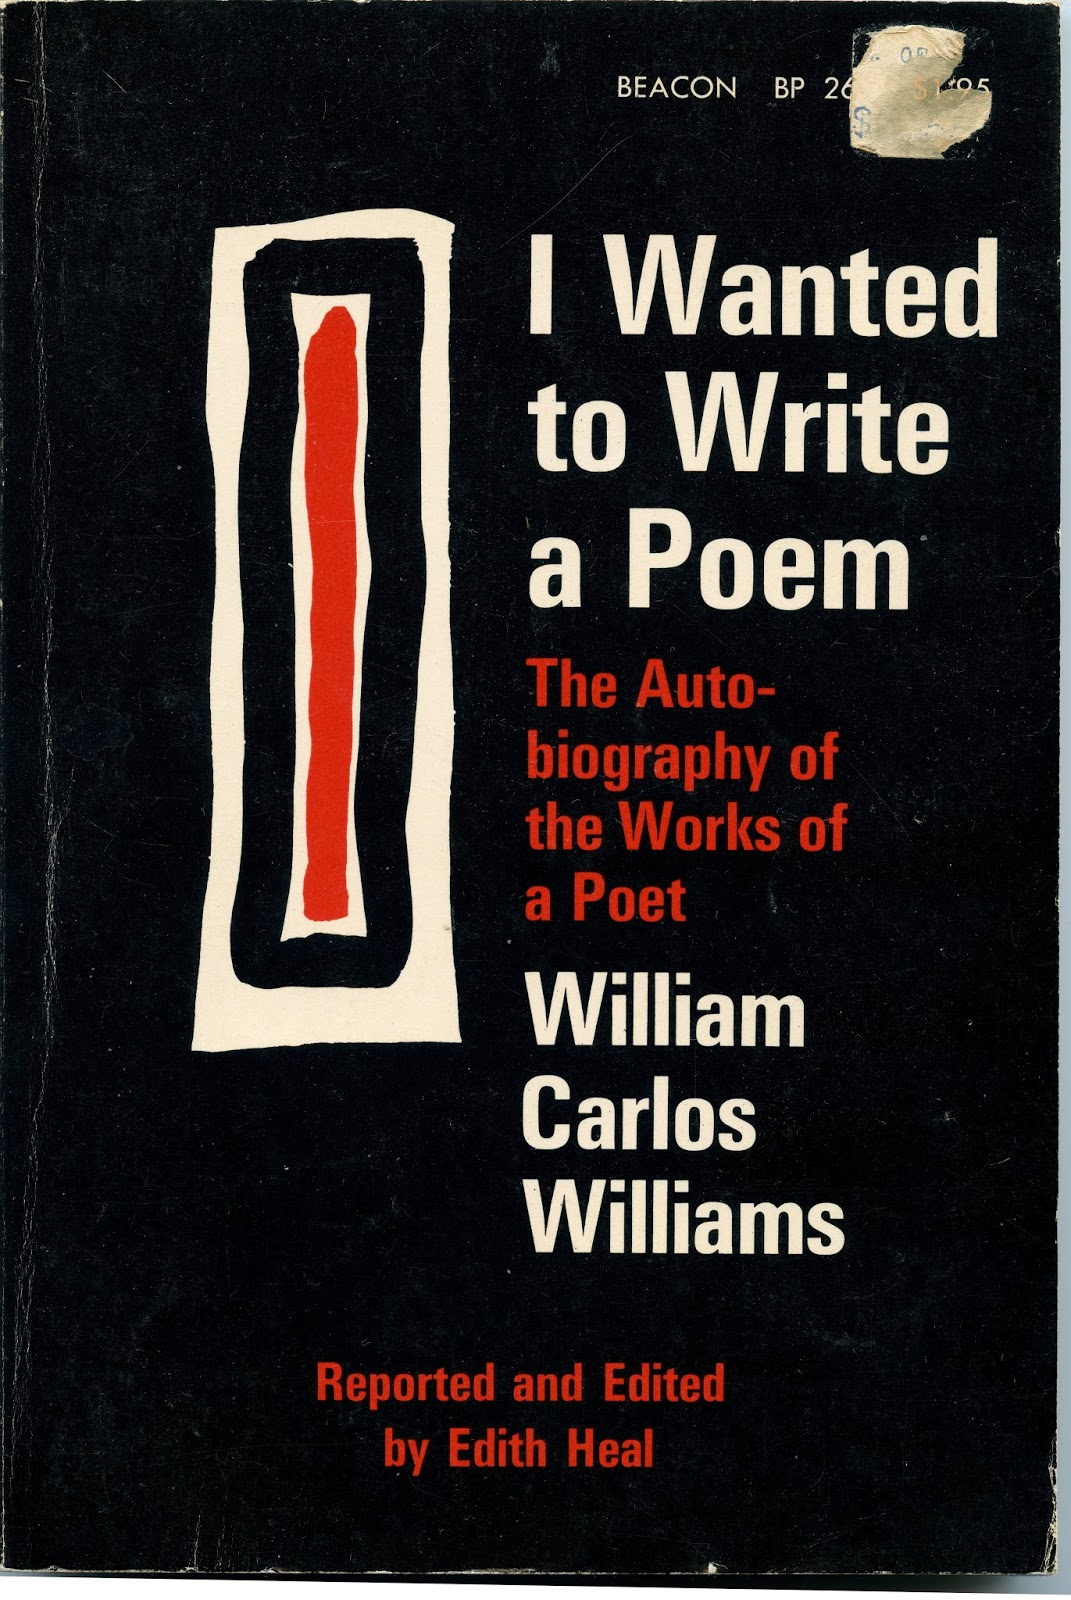 a biography and life work of william carlos williams an american poet Poet, artist, and practicing physician of rutherford, new jersey, william carlos williams wrote poetry that was experimental in form, ranging from imagism to objectivism, with great originality of idiom and human vitality.